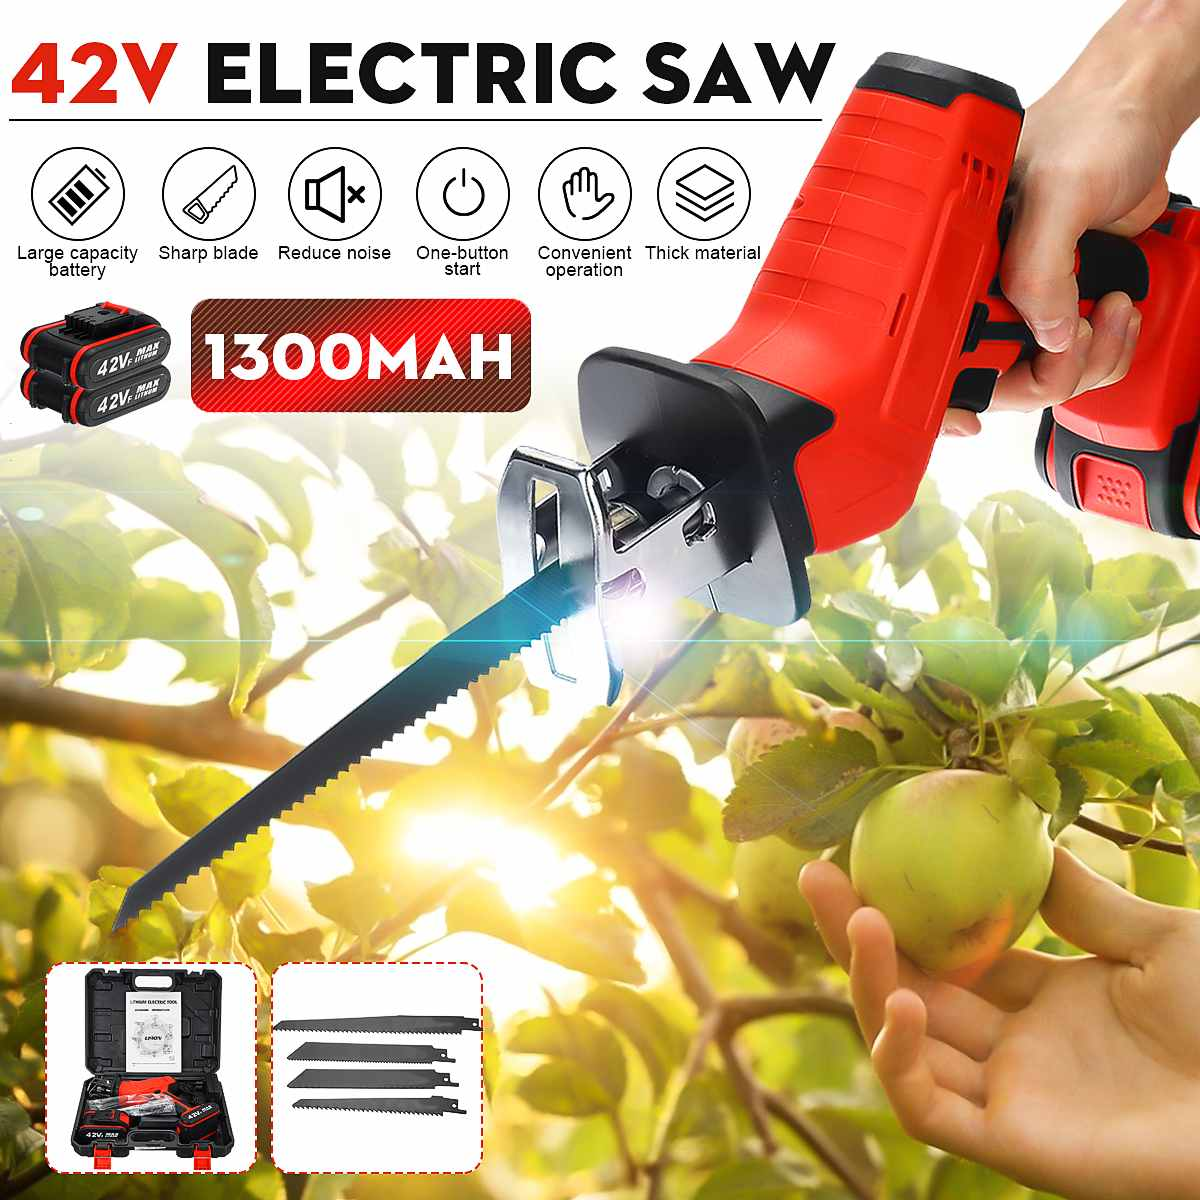 2x Battery 42V Rechargeable Cordless Reciprocating Saw Portable Woodworking Cutters +4 Blades +LED Light For Wood Metal Cutting